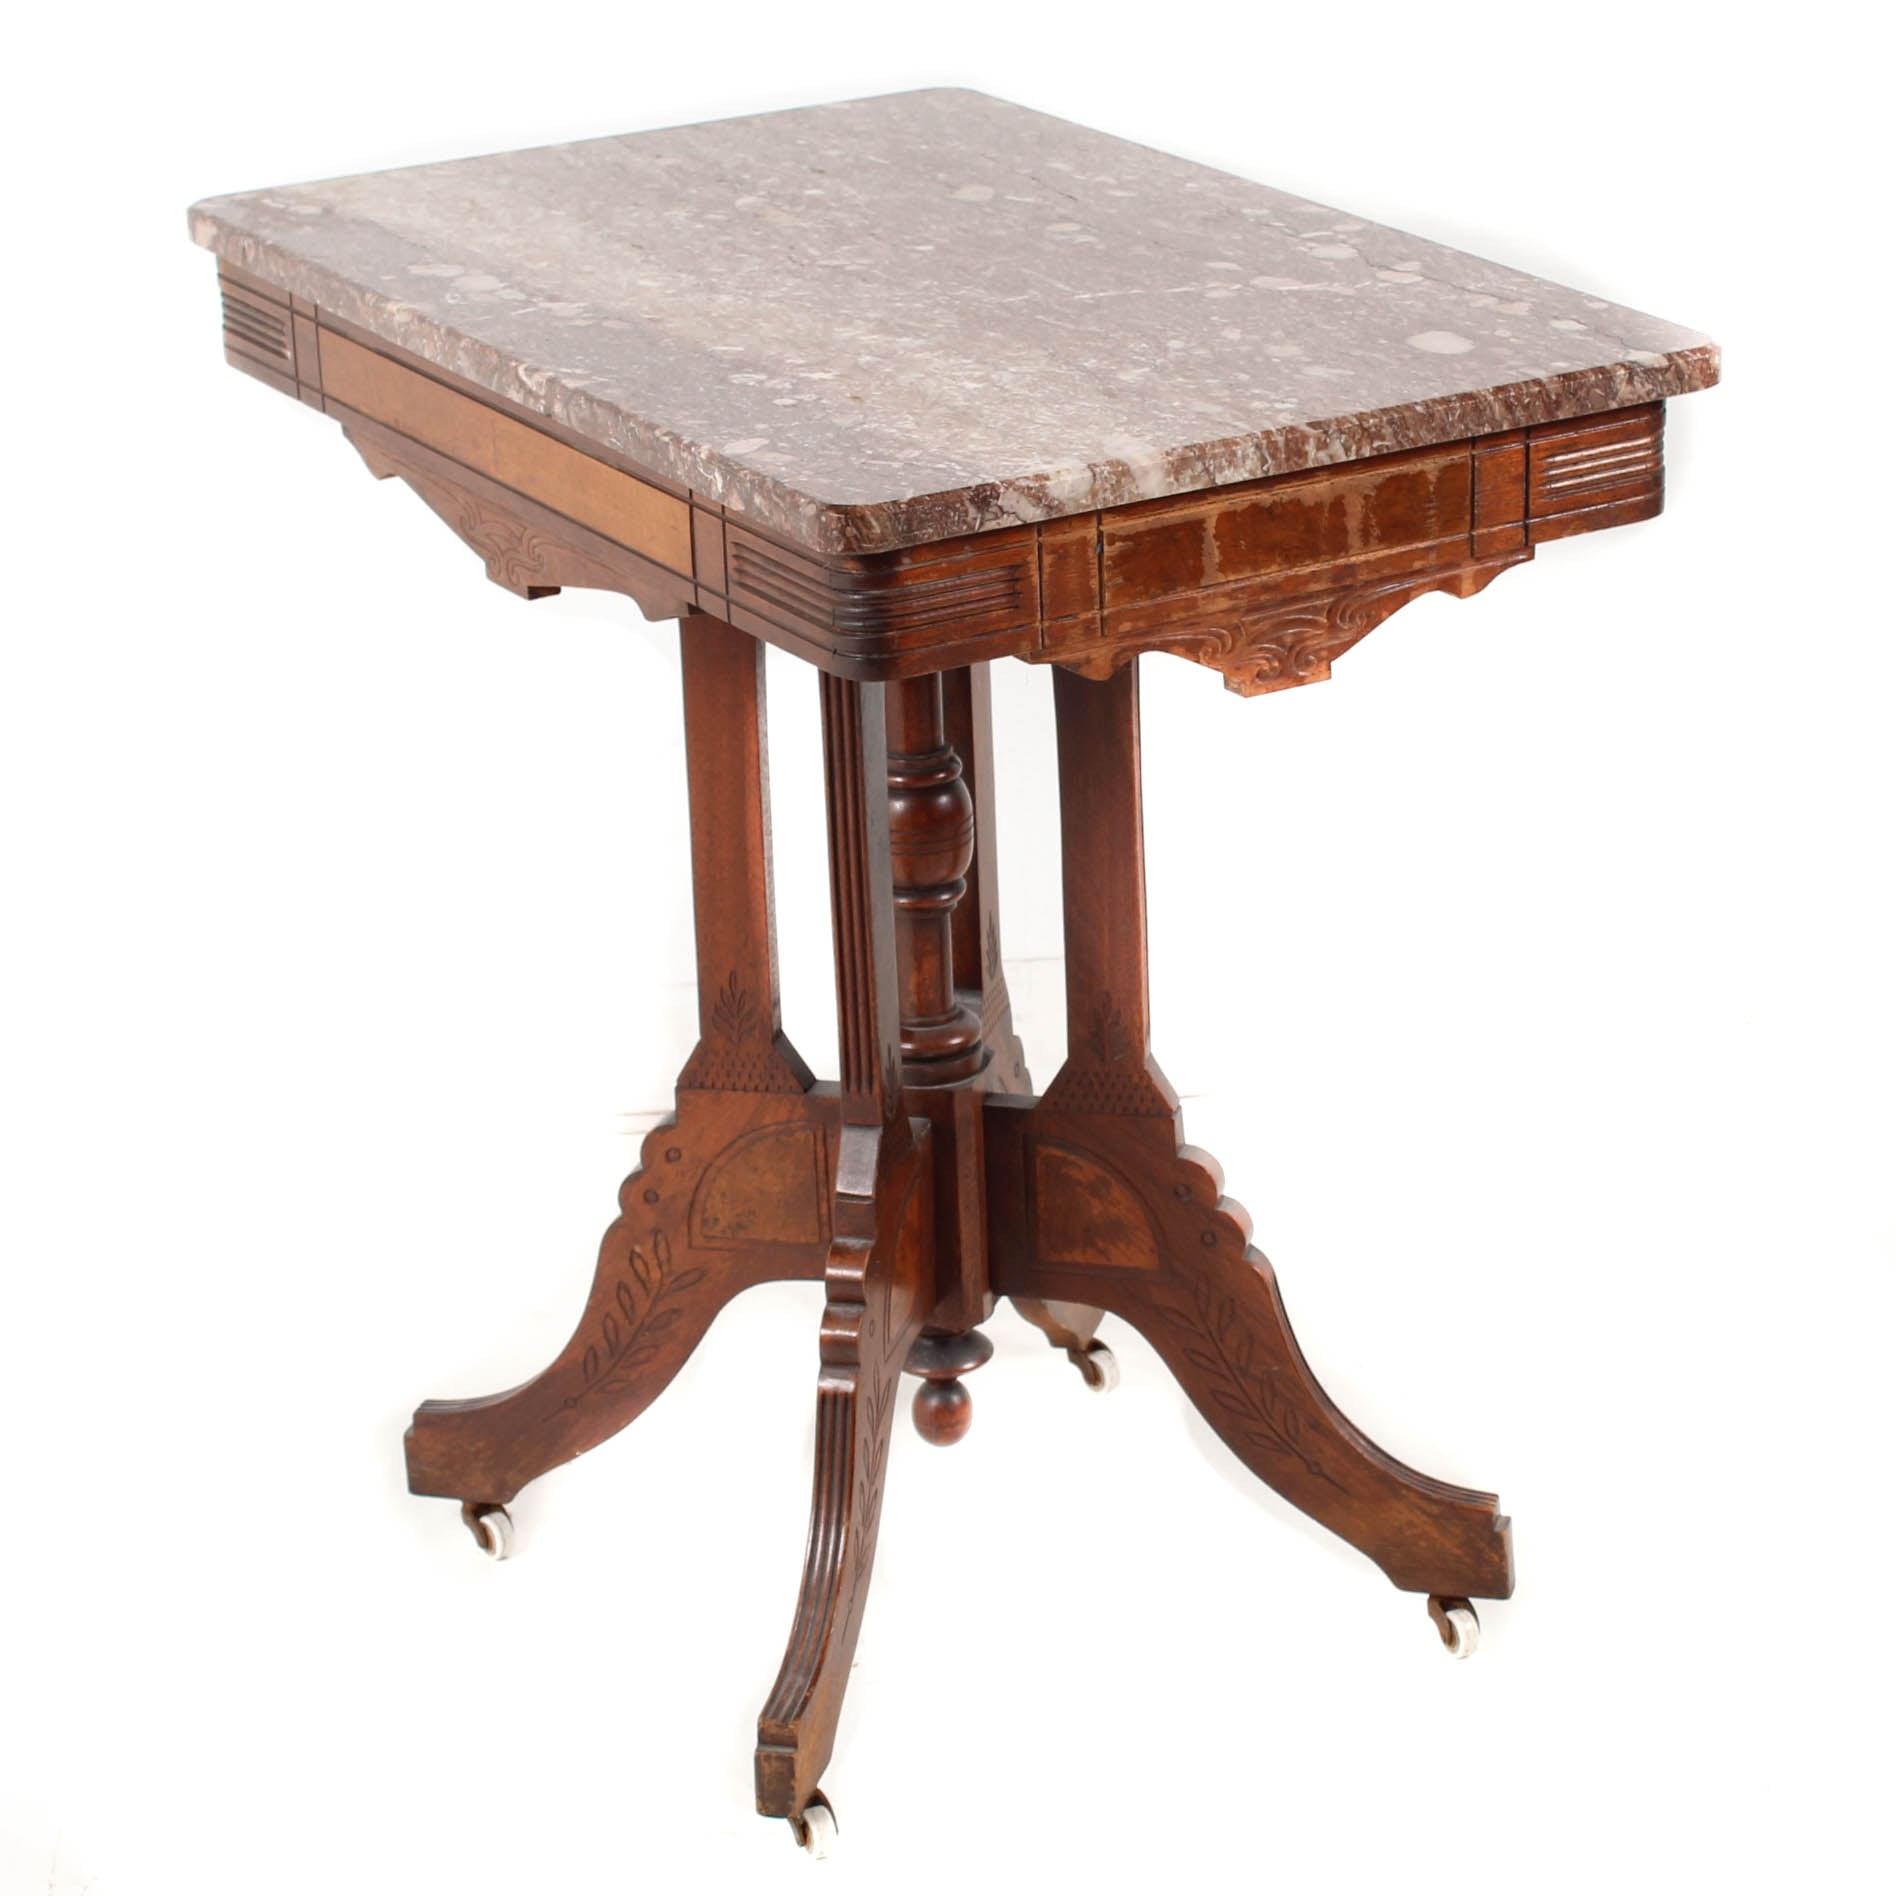 Antique Eastlake Walnut Accent Table with Marble Top